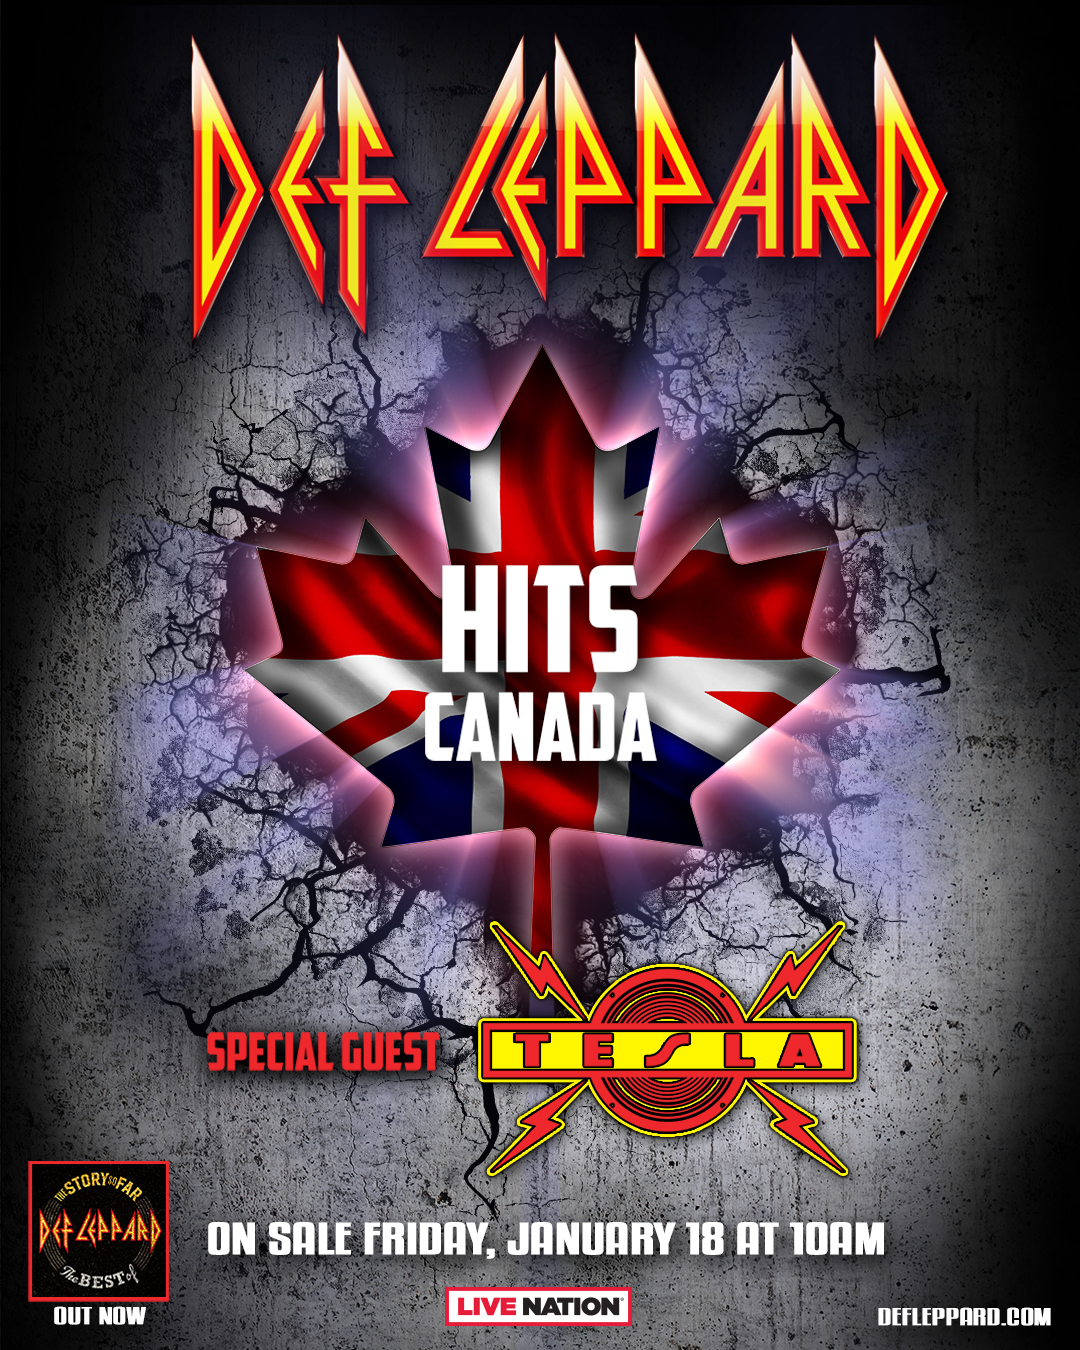 Poison Tesla Def Leppard Tour 2020 Def Leppard Hits Canada This Summer | Def Leppard